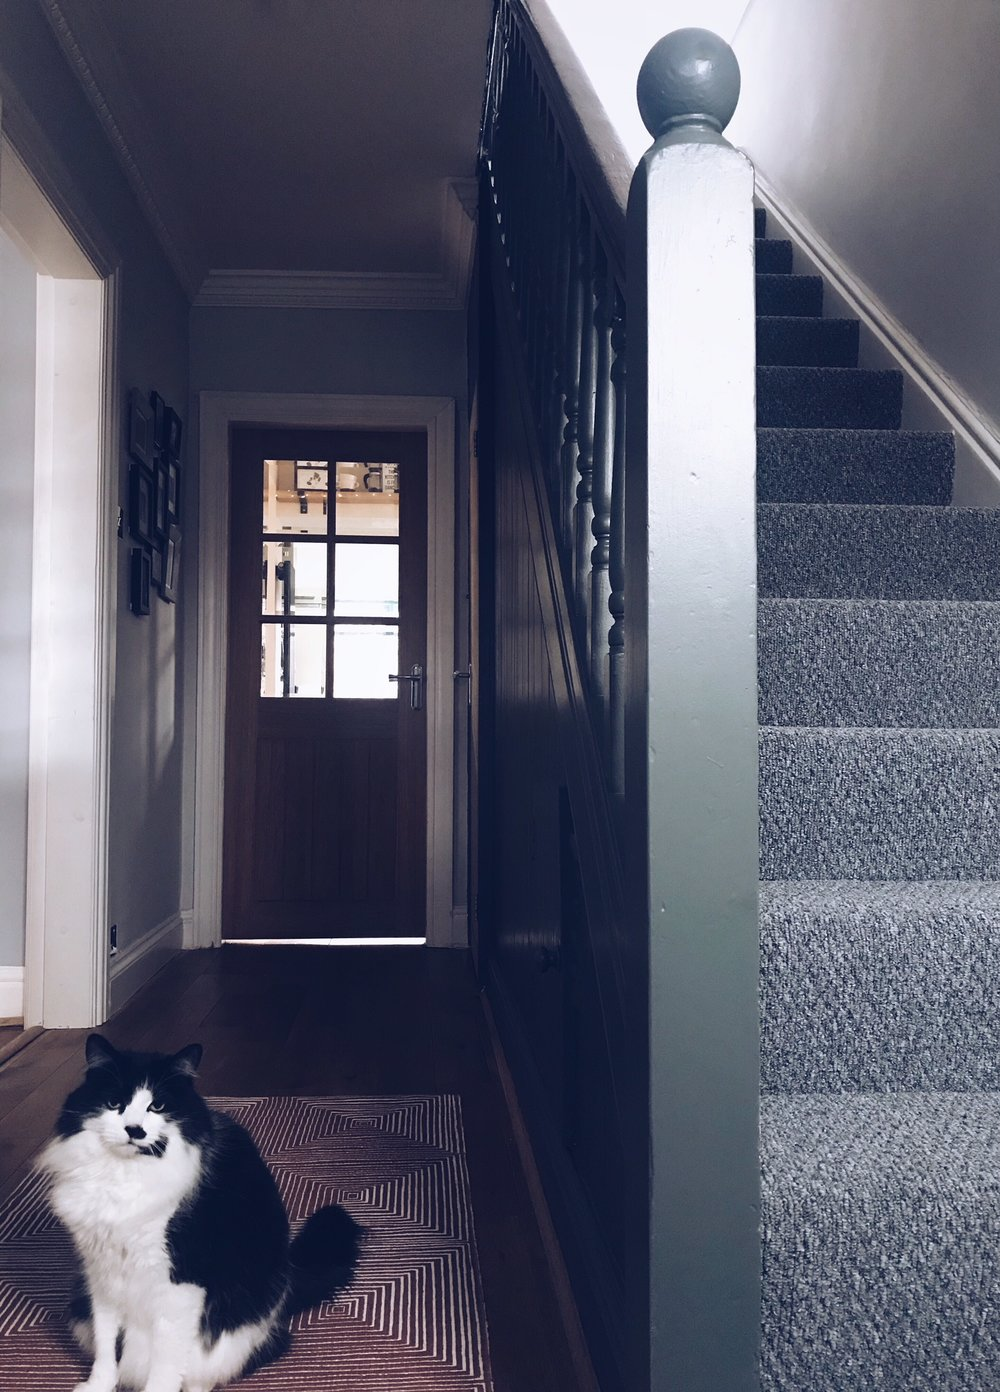 Beautiful cat and hallway combination!